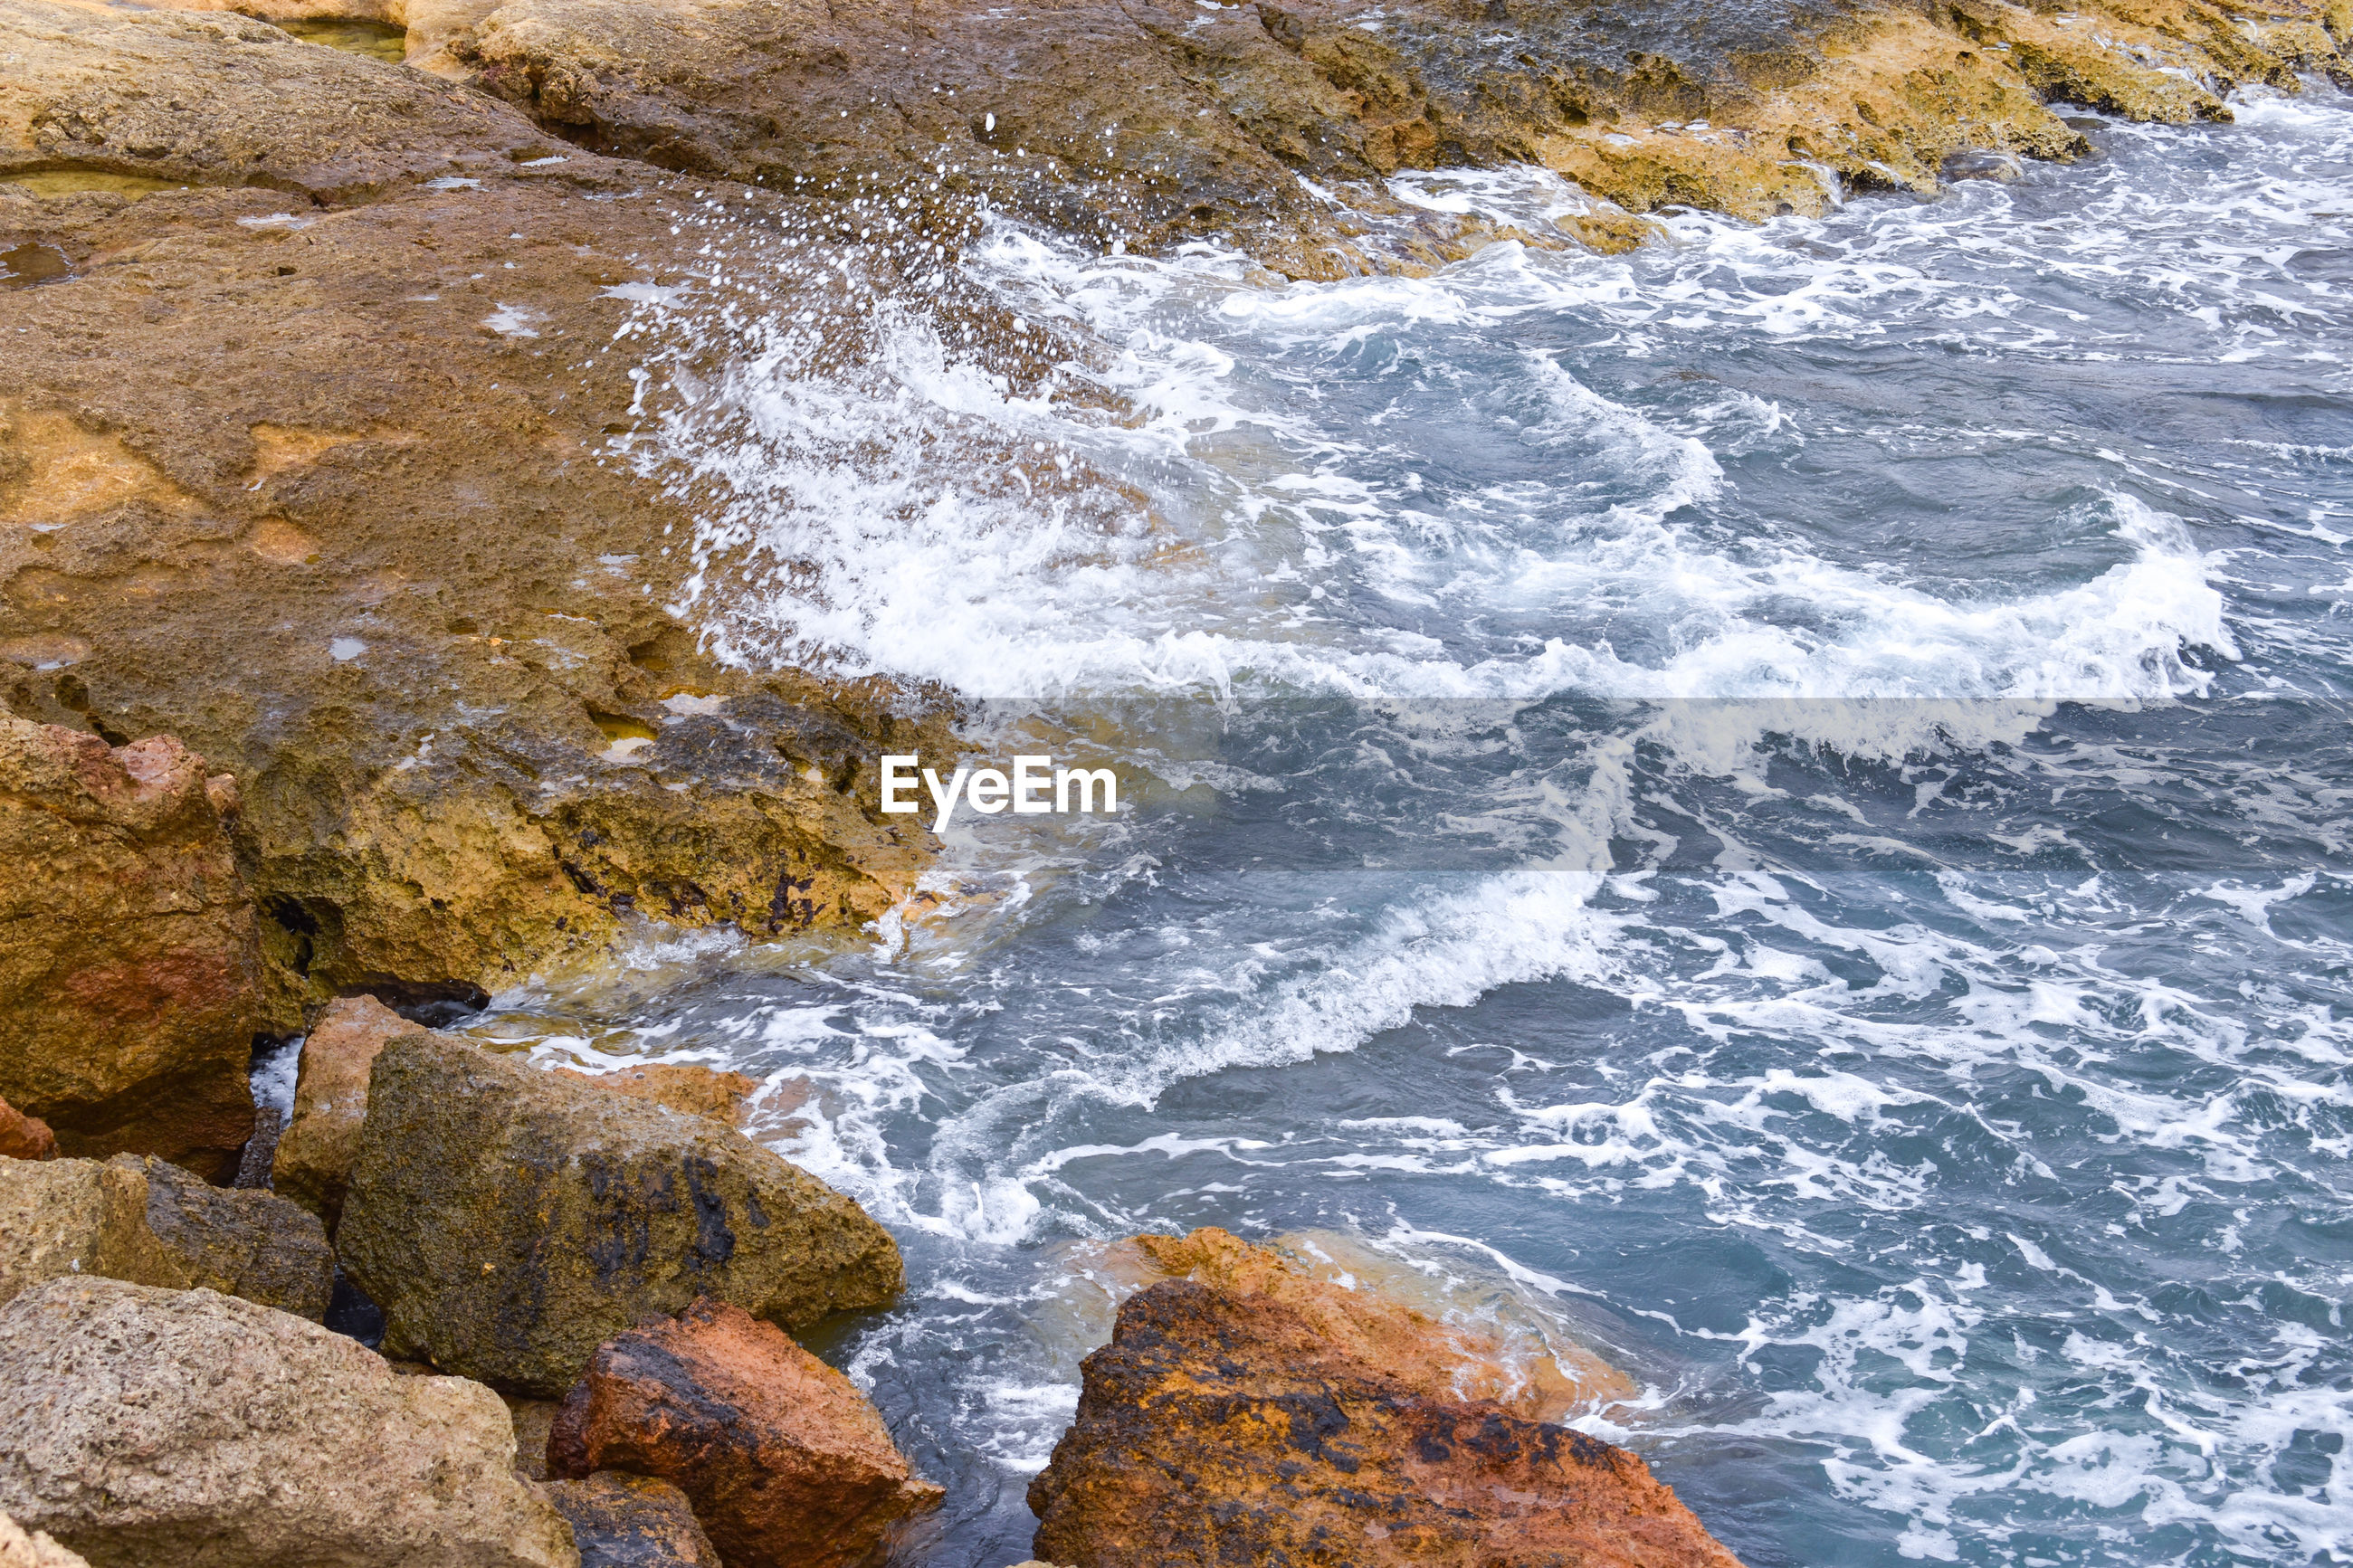 sea, water, rock - object, nature, wave, motion, no people, beauty in nature, high angle view, day, outdoors, scenics